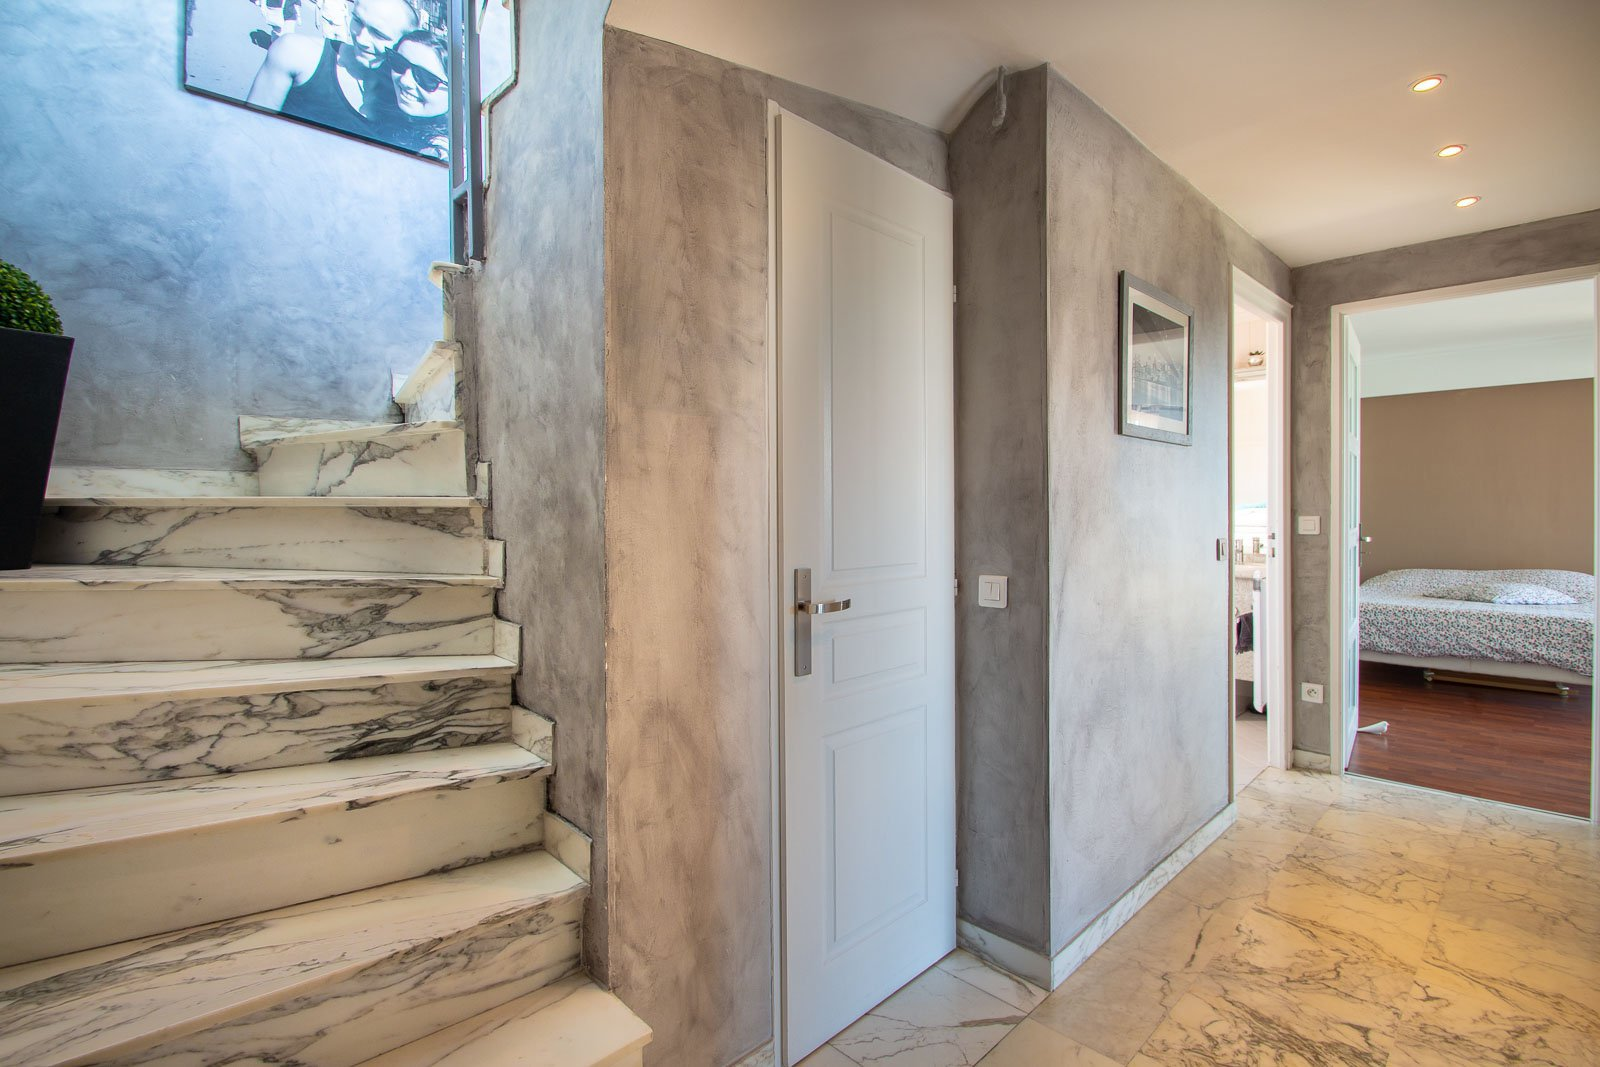 3-room Penthouse in Cagnes sur Mer